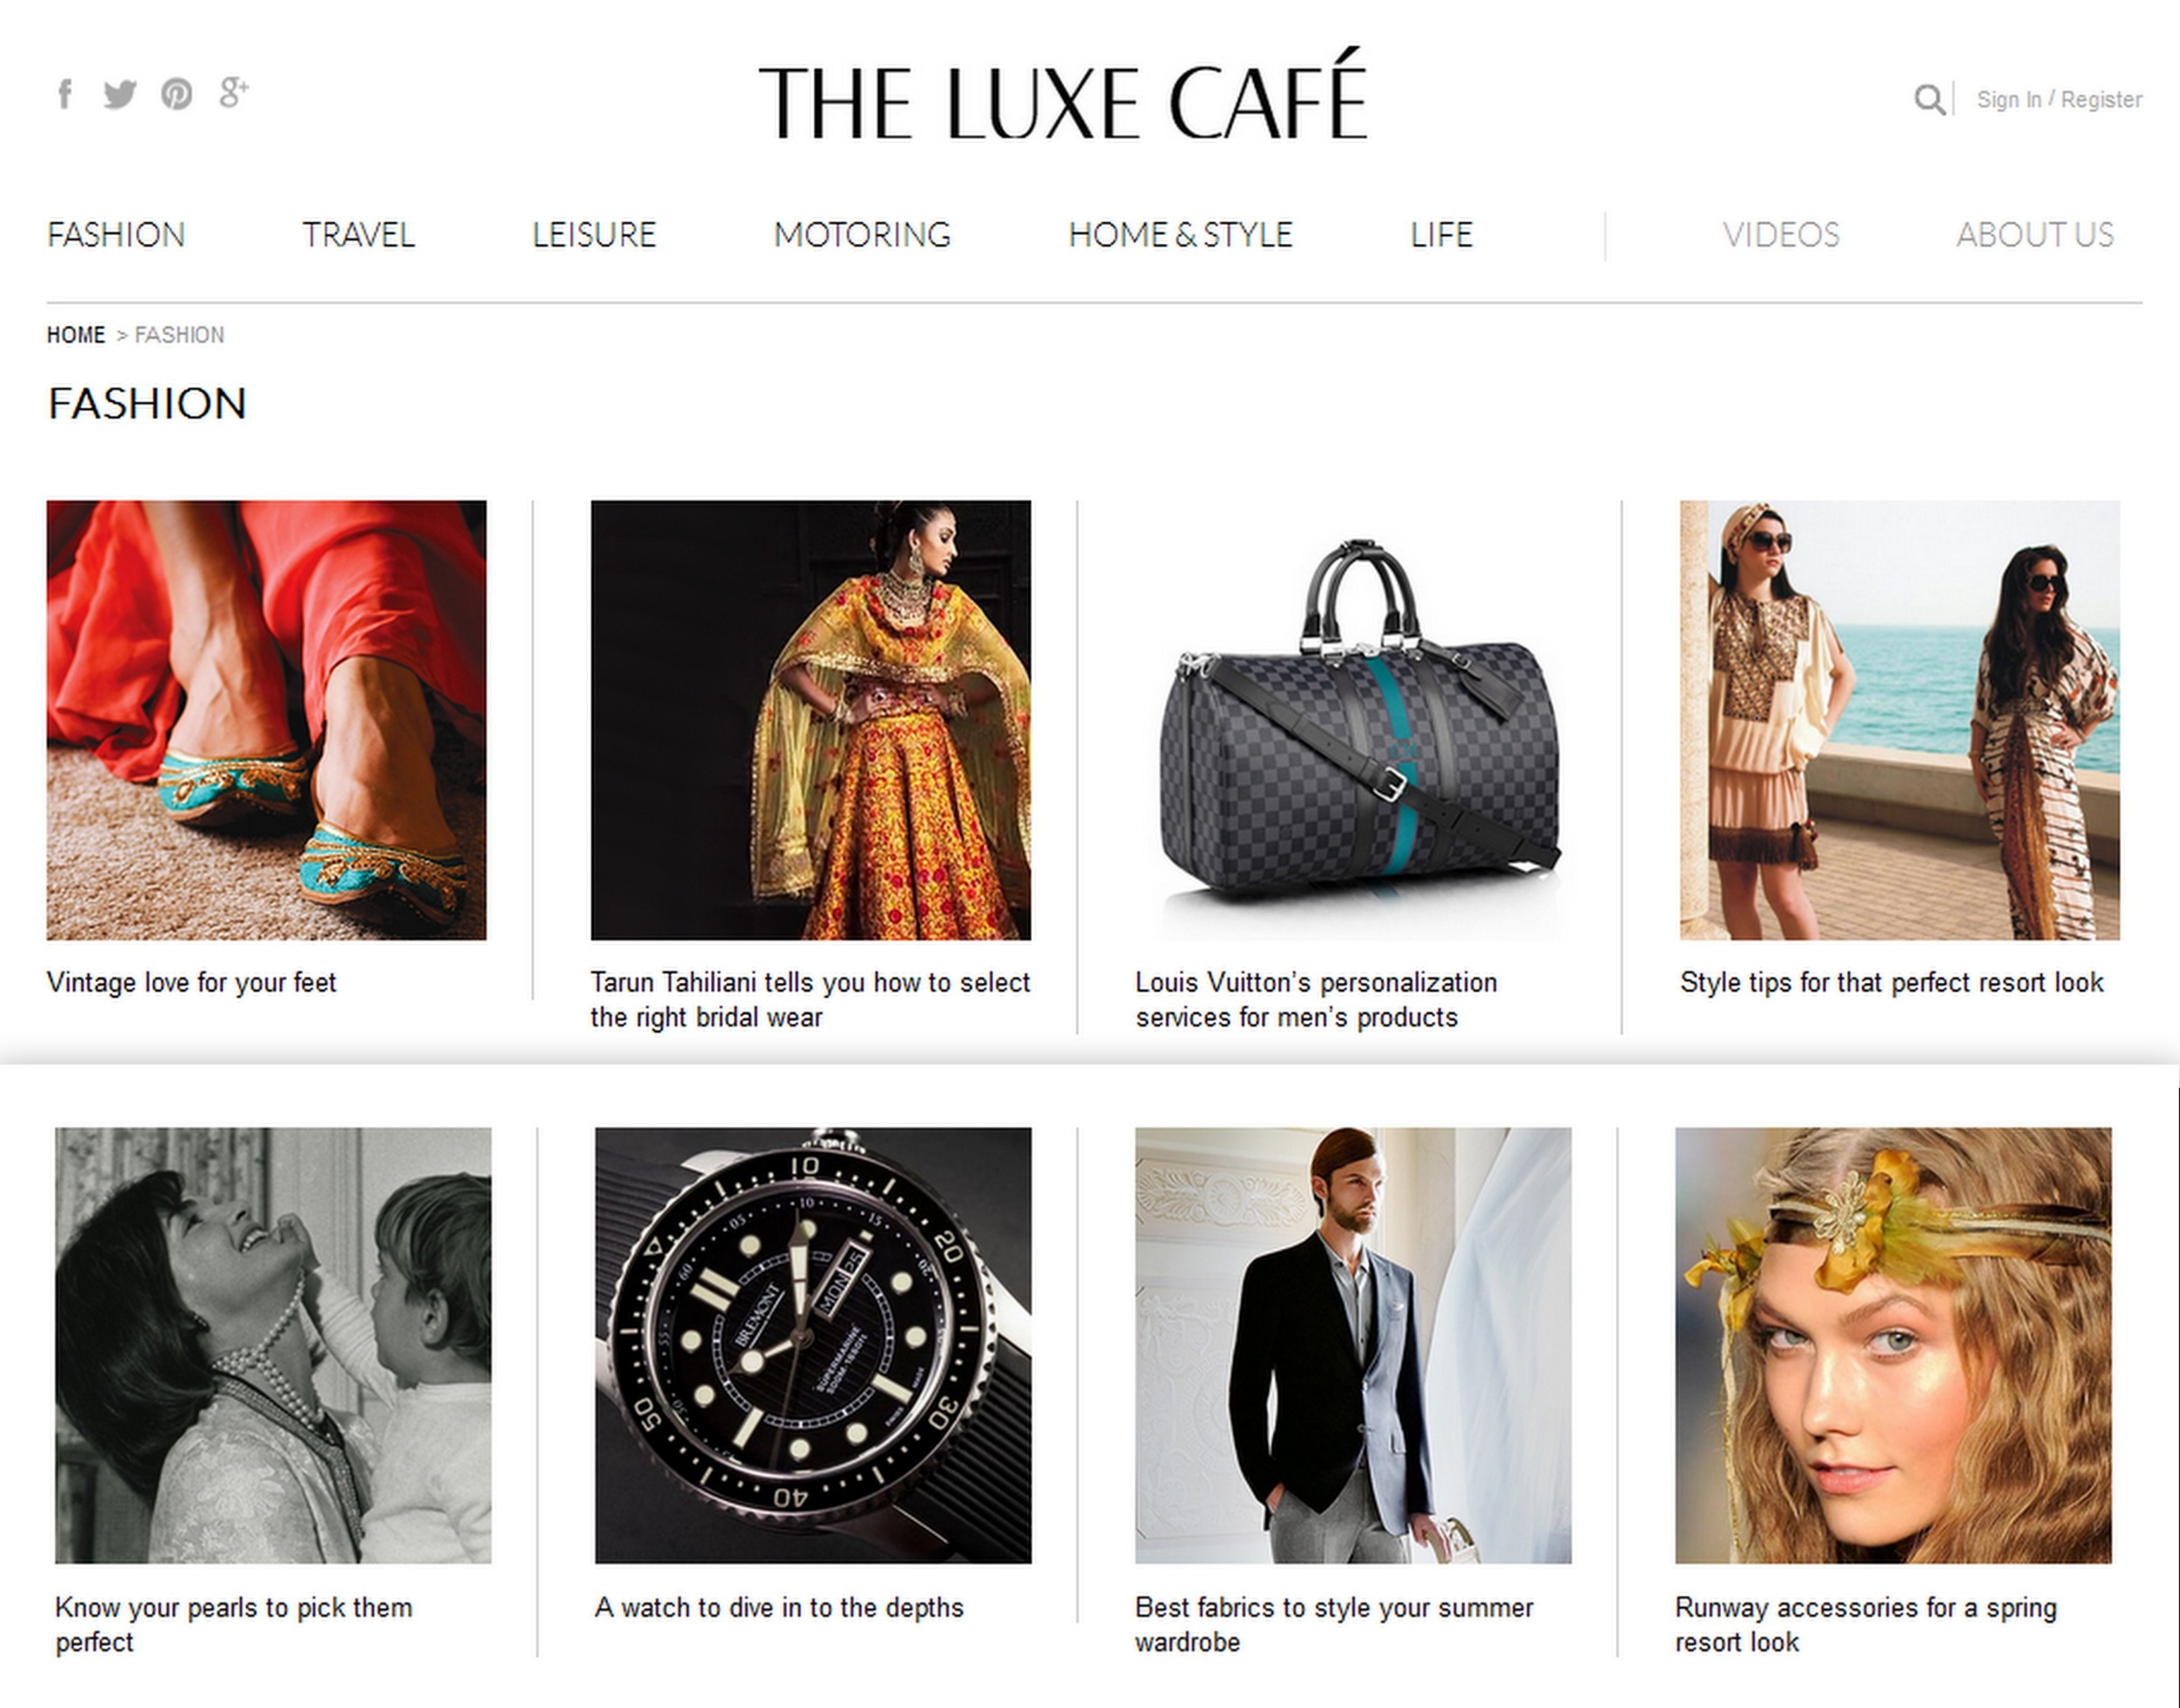 The luxe cafe- bringing luxury